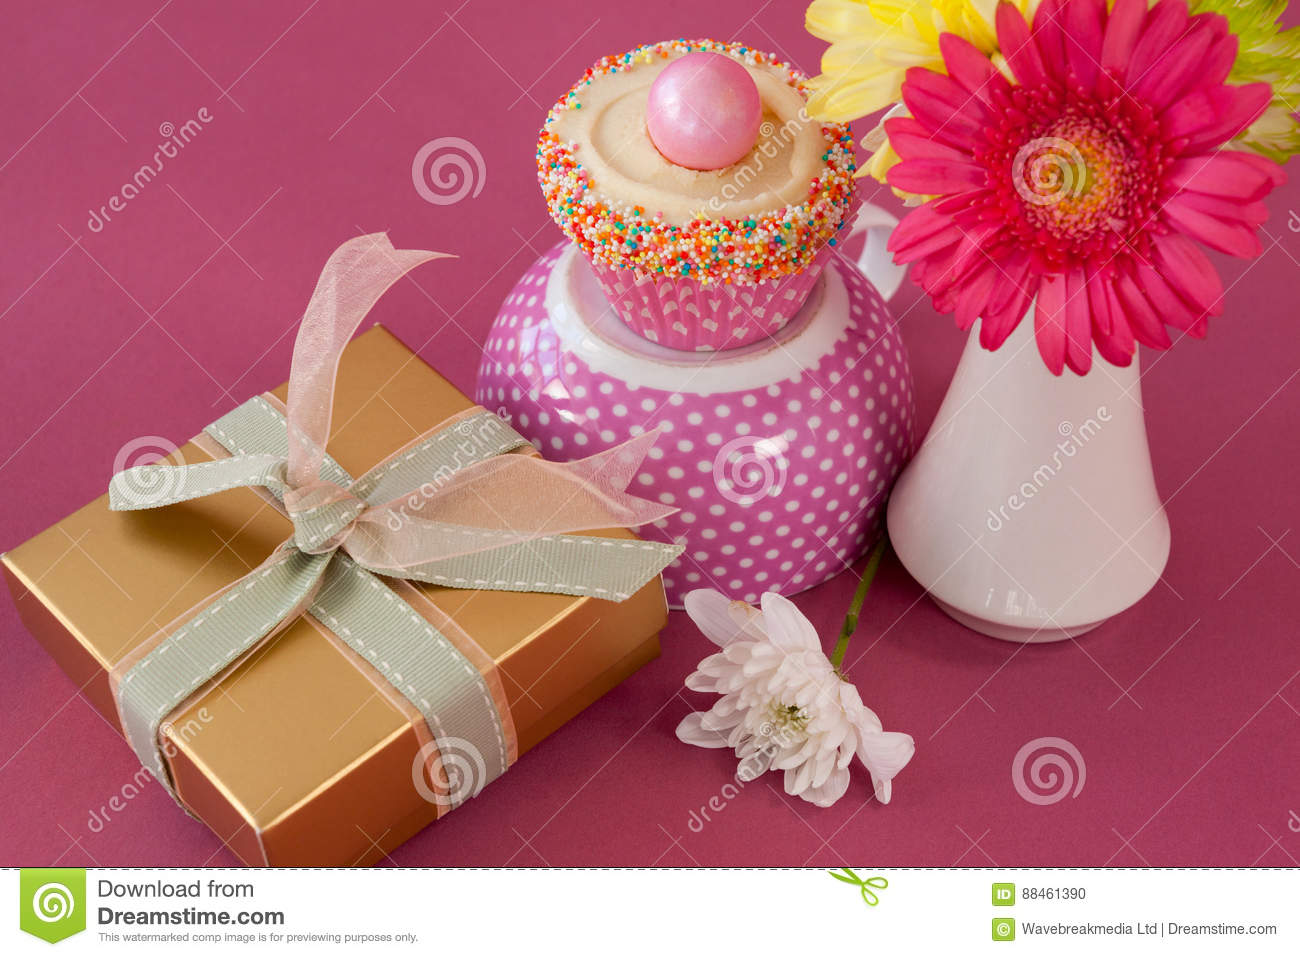 Close-up Of Gift Box, Cupcake And Flowers Vase Stock Photo - Image ...